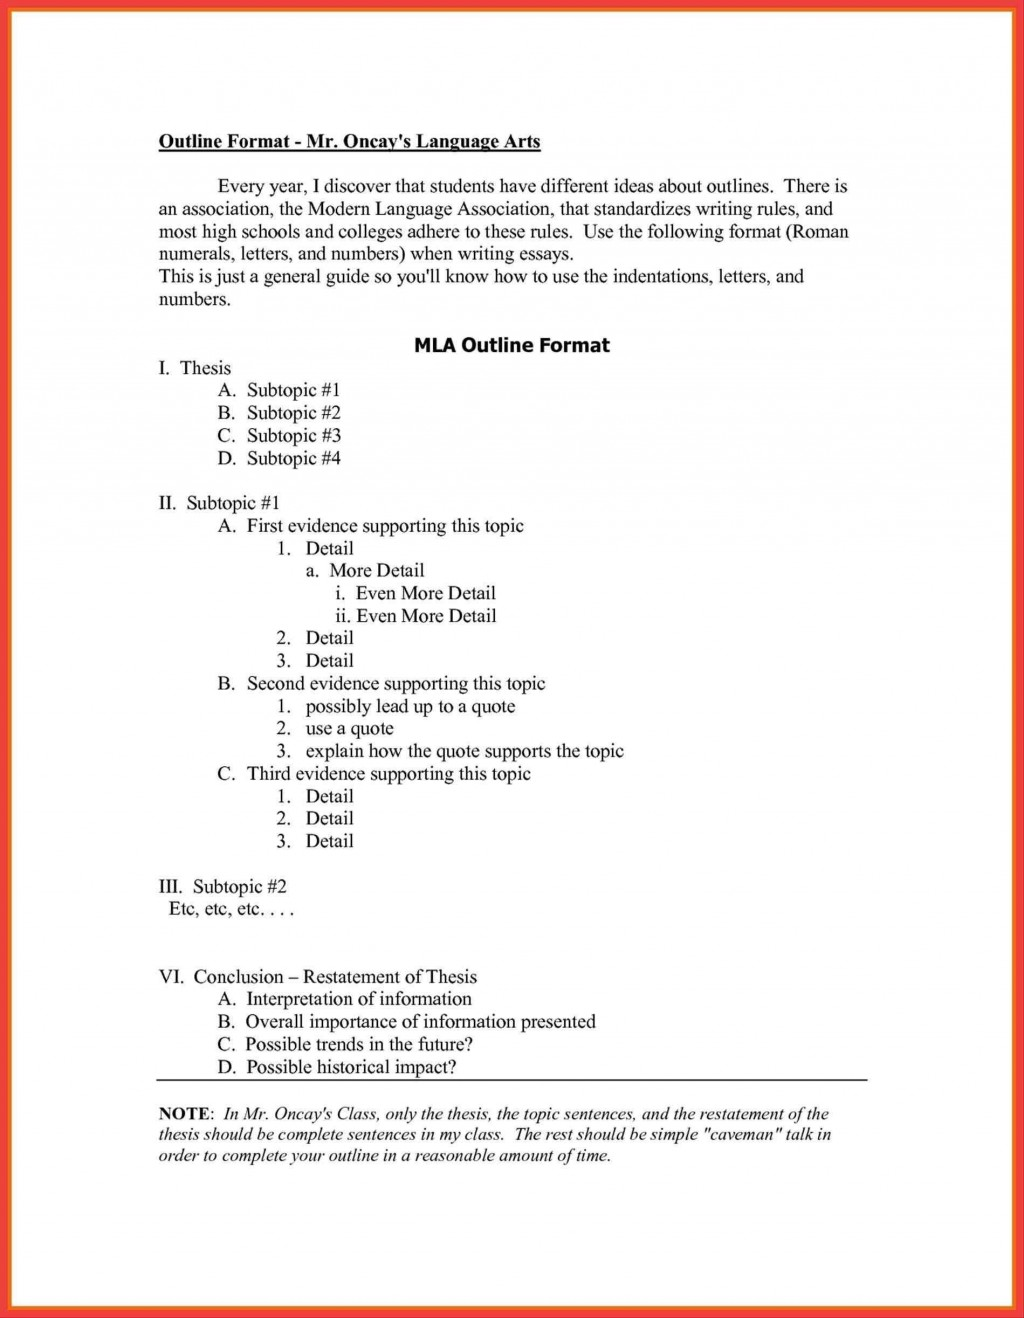 004 Singular Mla Format Outline Template High Definition  Research PaperLarge